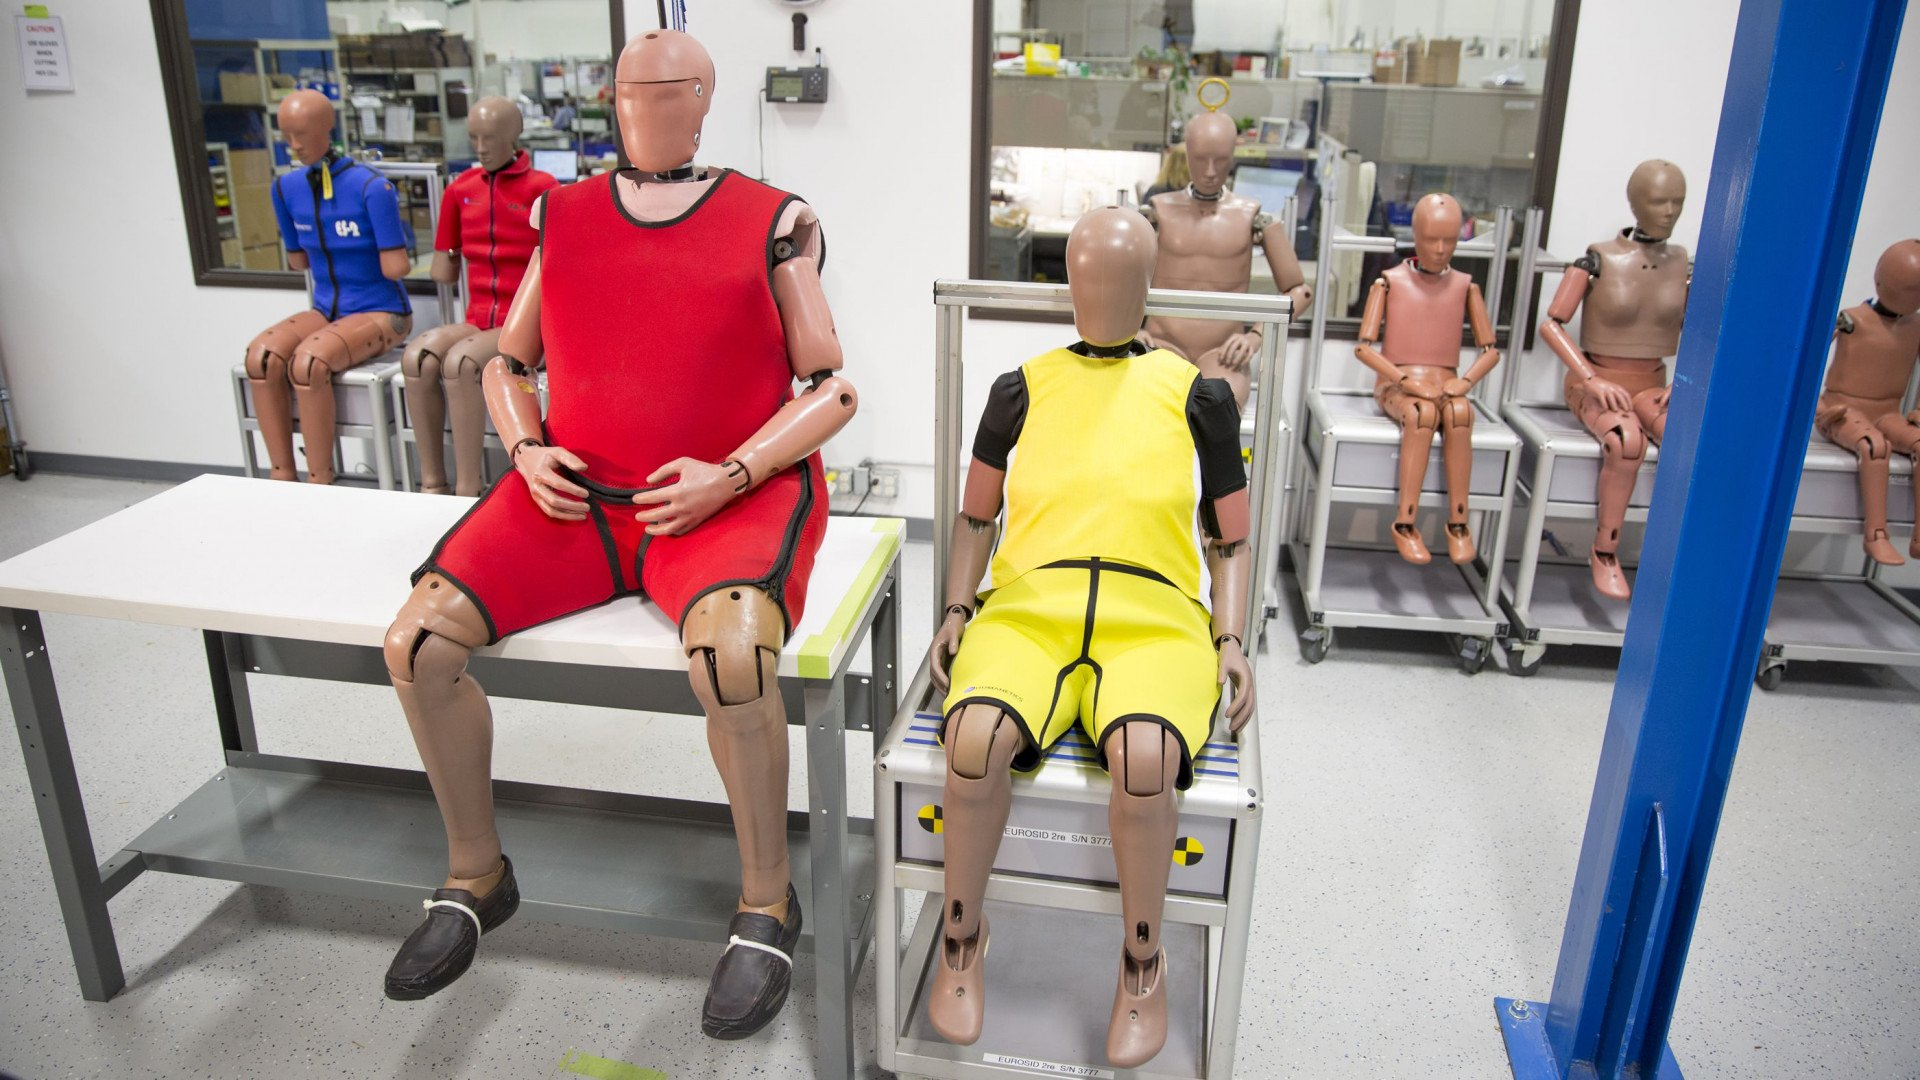 Humanetics is 3D Printing Crash Test Dummies That Resemble Elderly People | All3DP